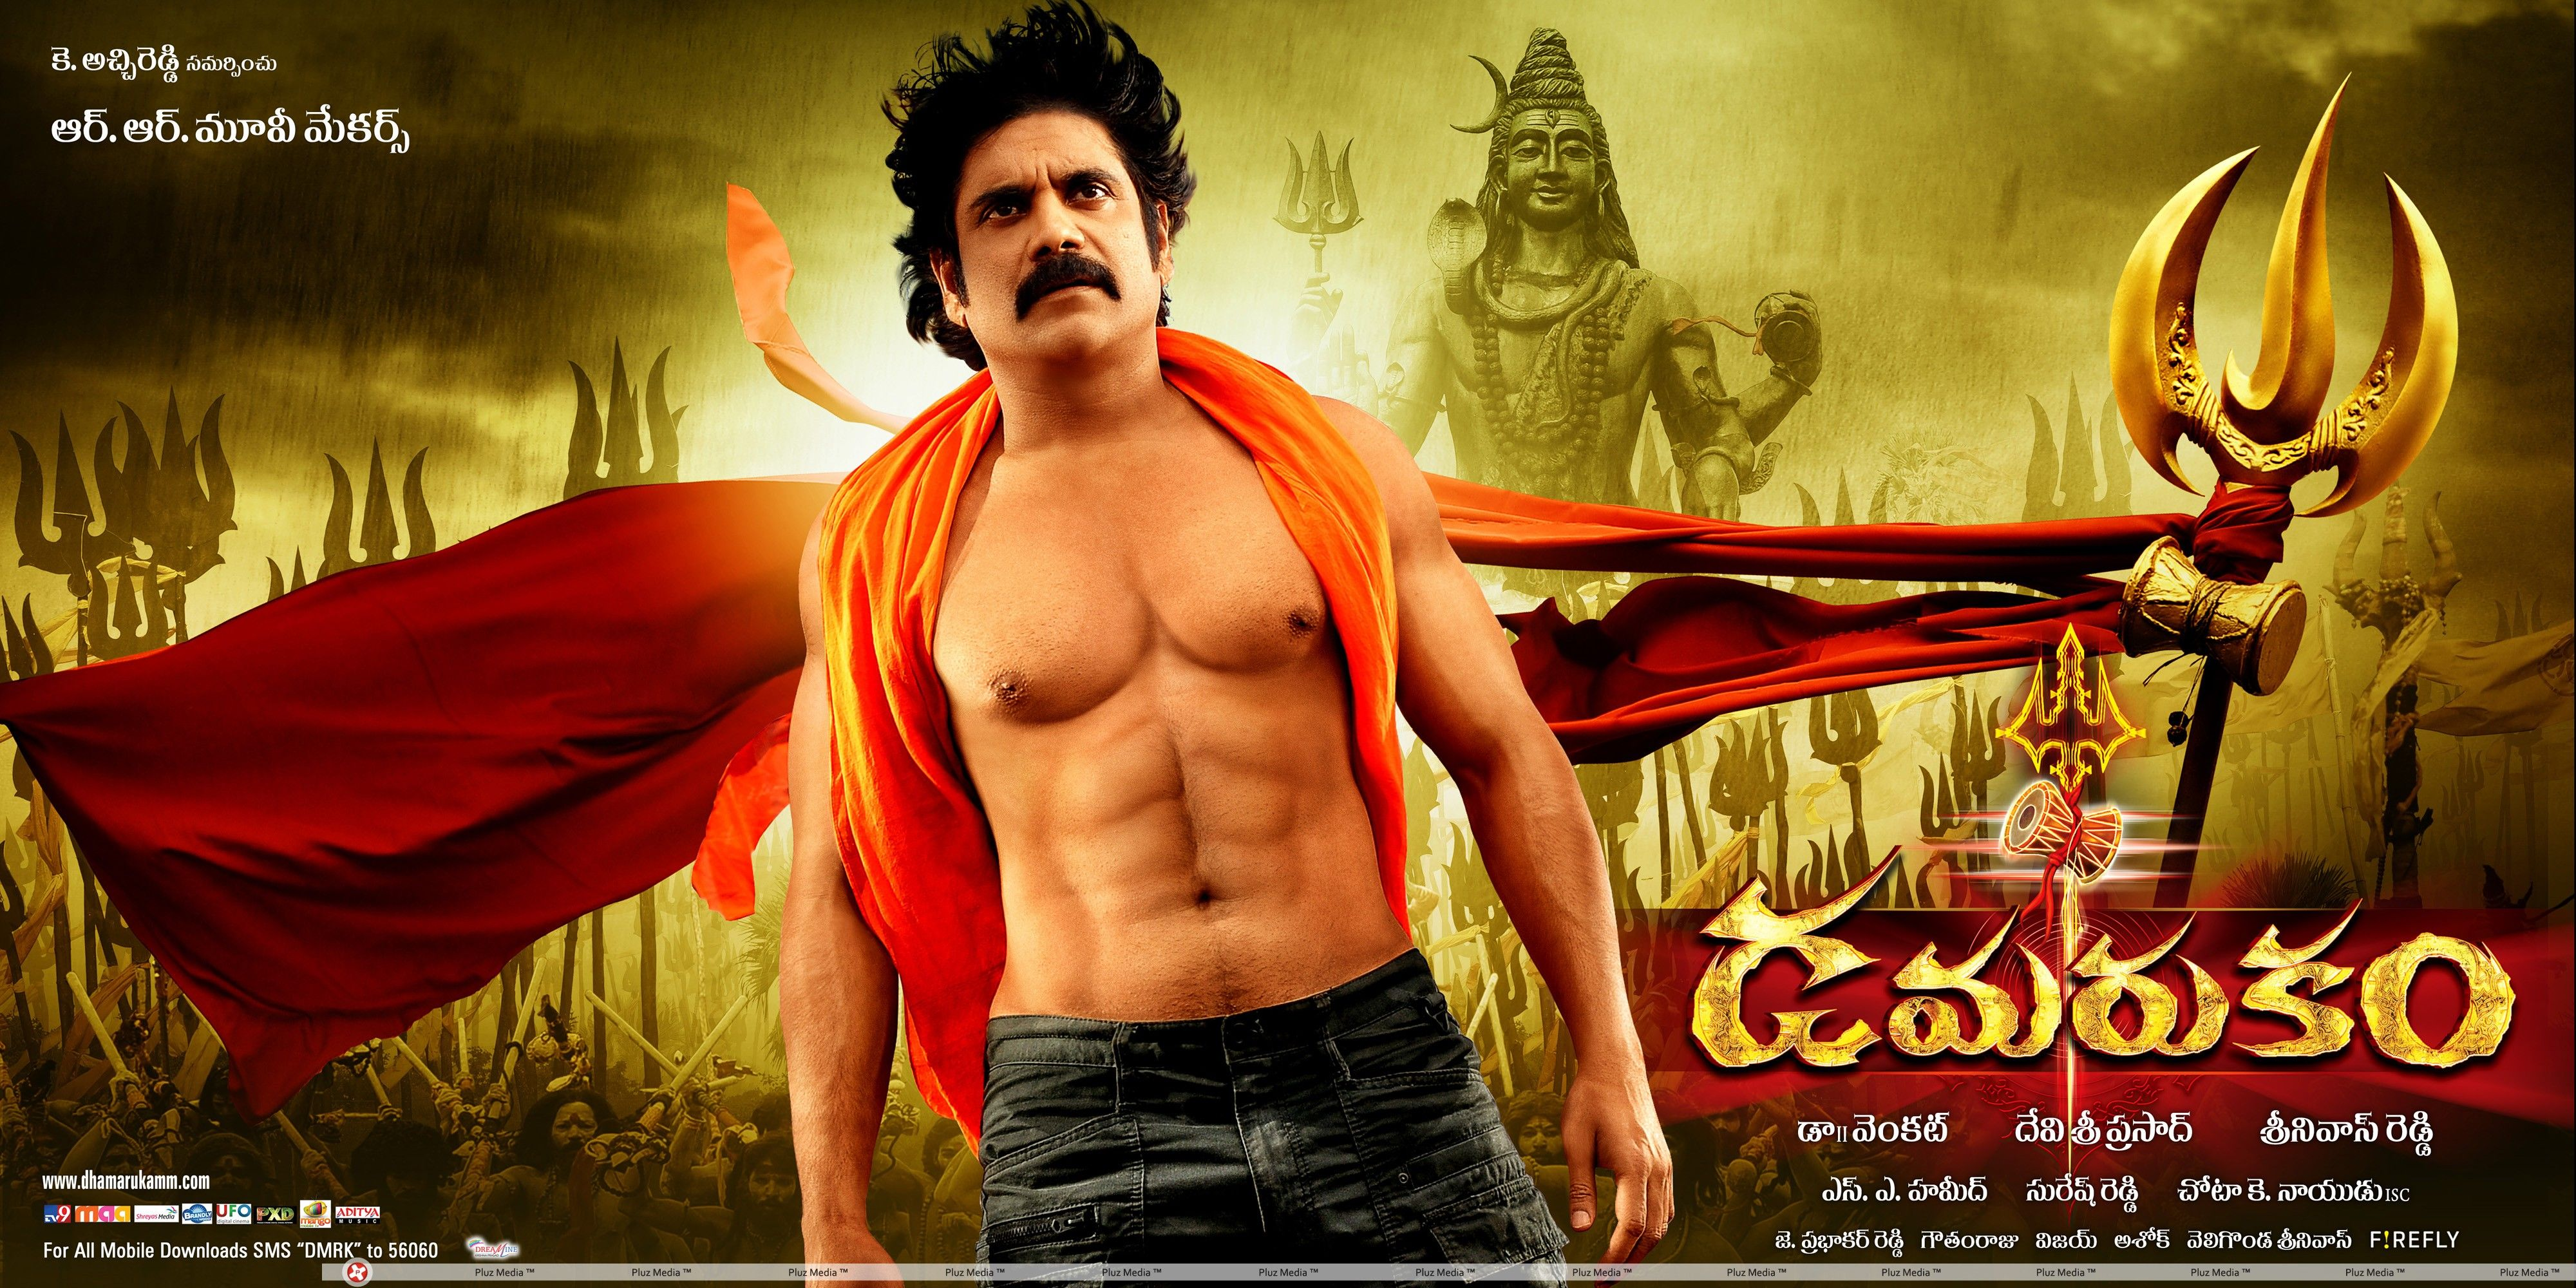 Actor nagarjuna six pack body in damarukam movie poster thecheapjerseys Images